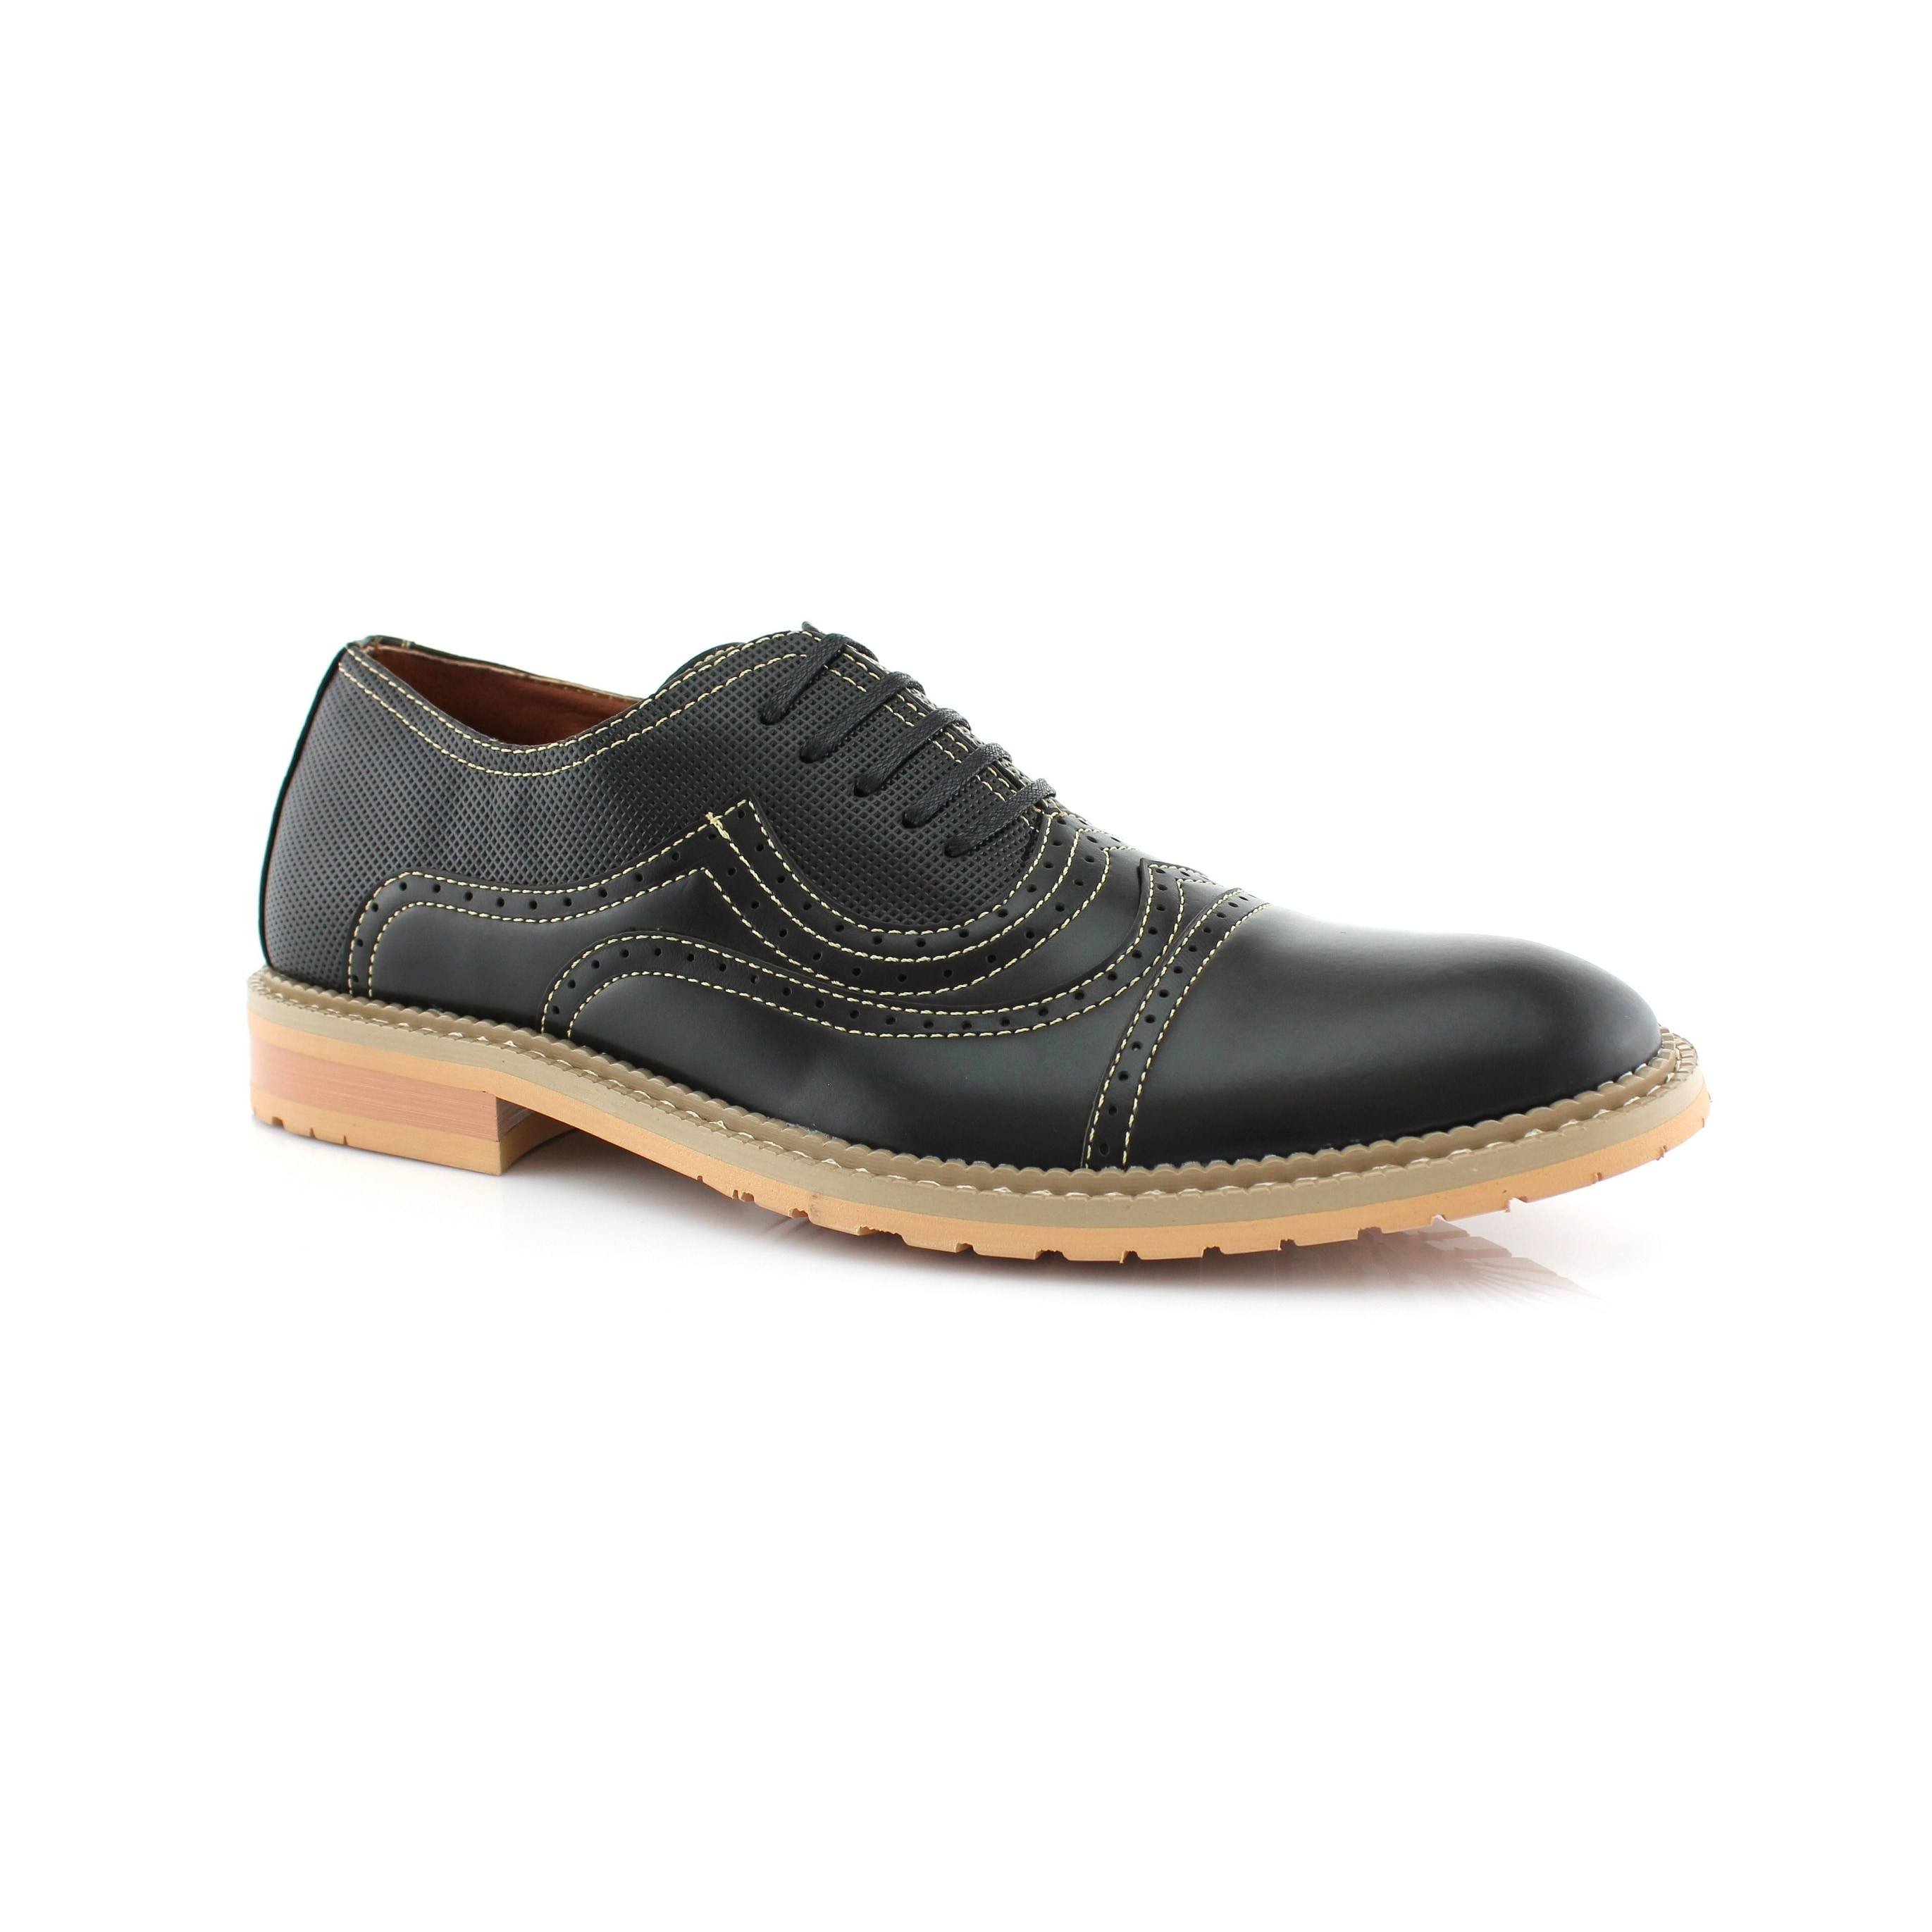 Ferro Aldo Xavier Mfa19382le Mens Oxford Dress Shoes With Lace Up Closure For Everyday Wear